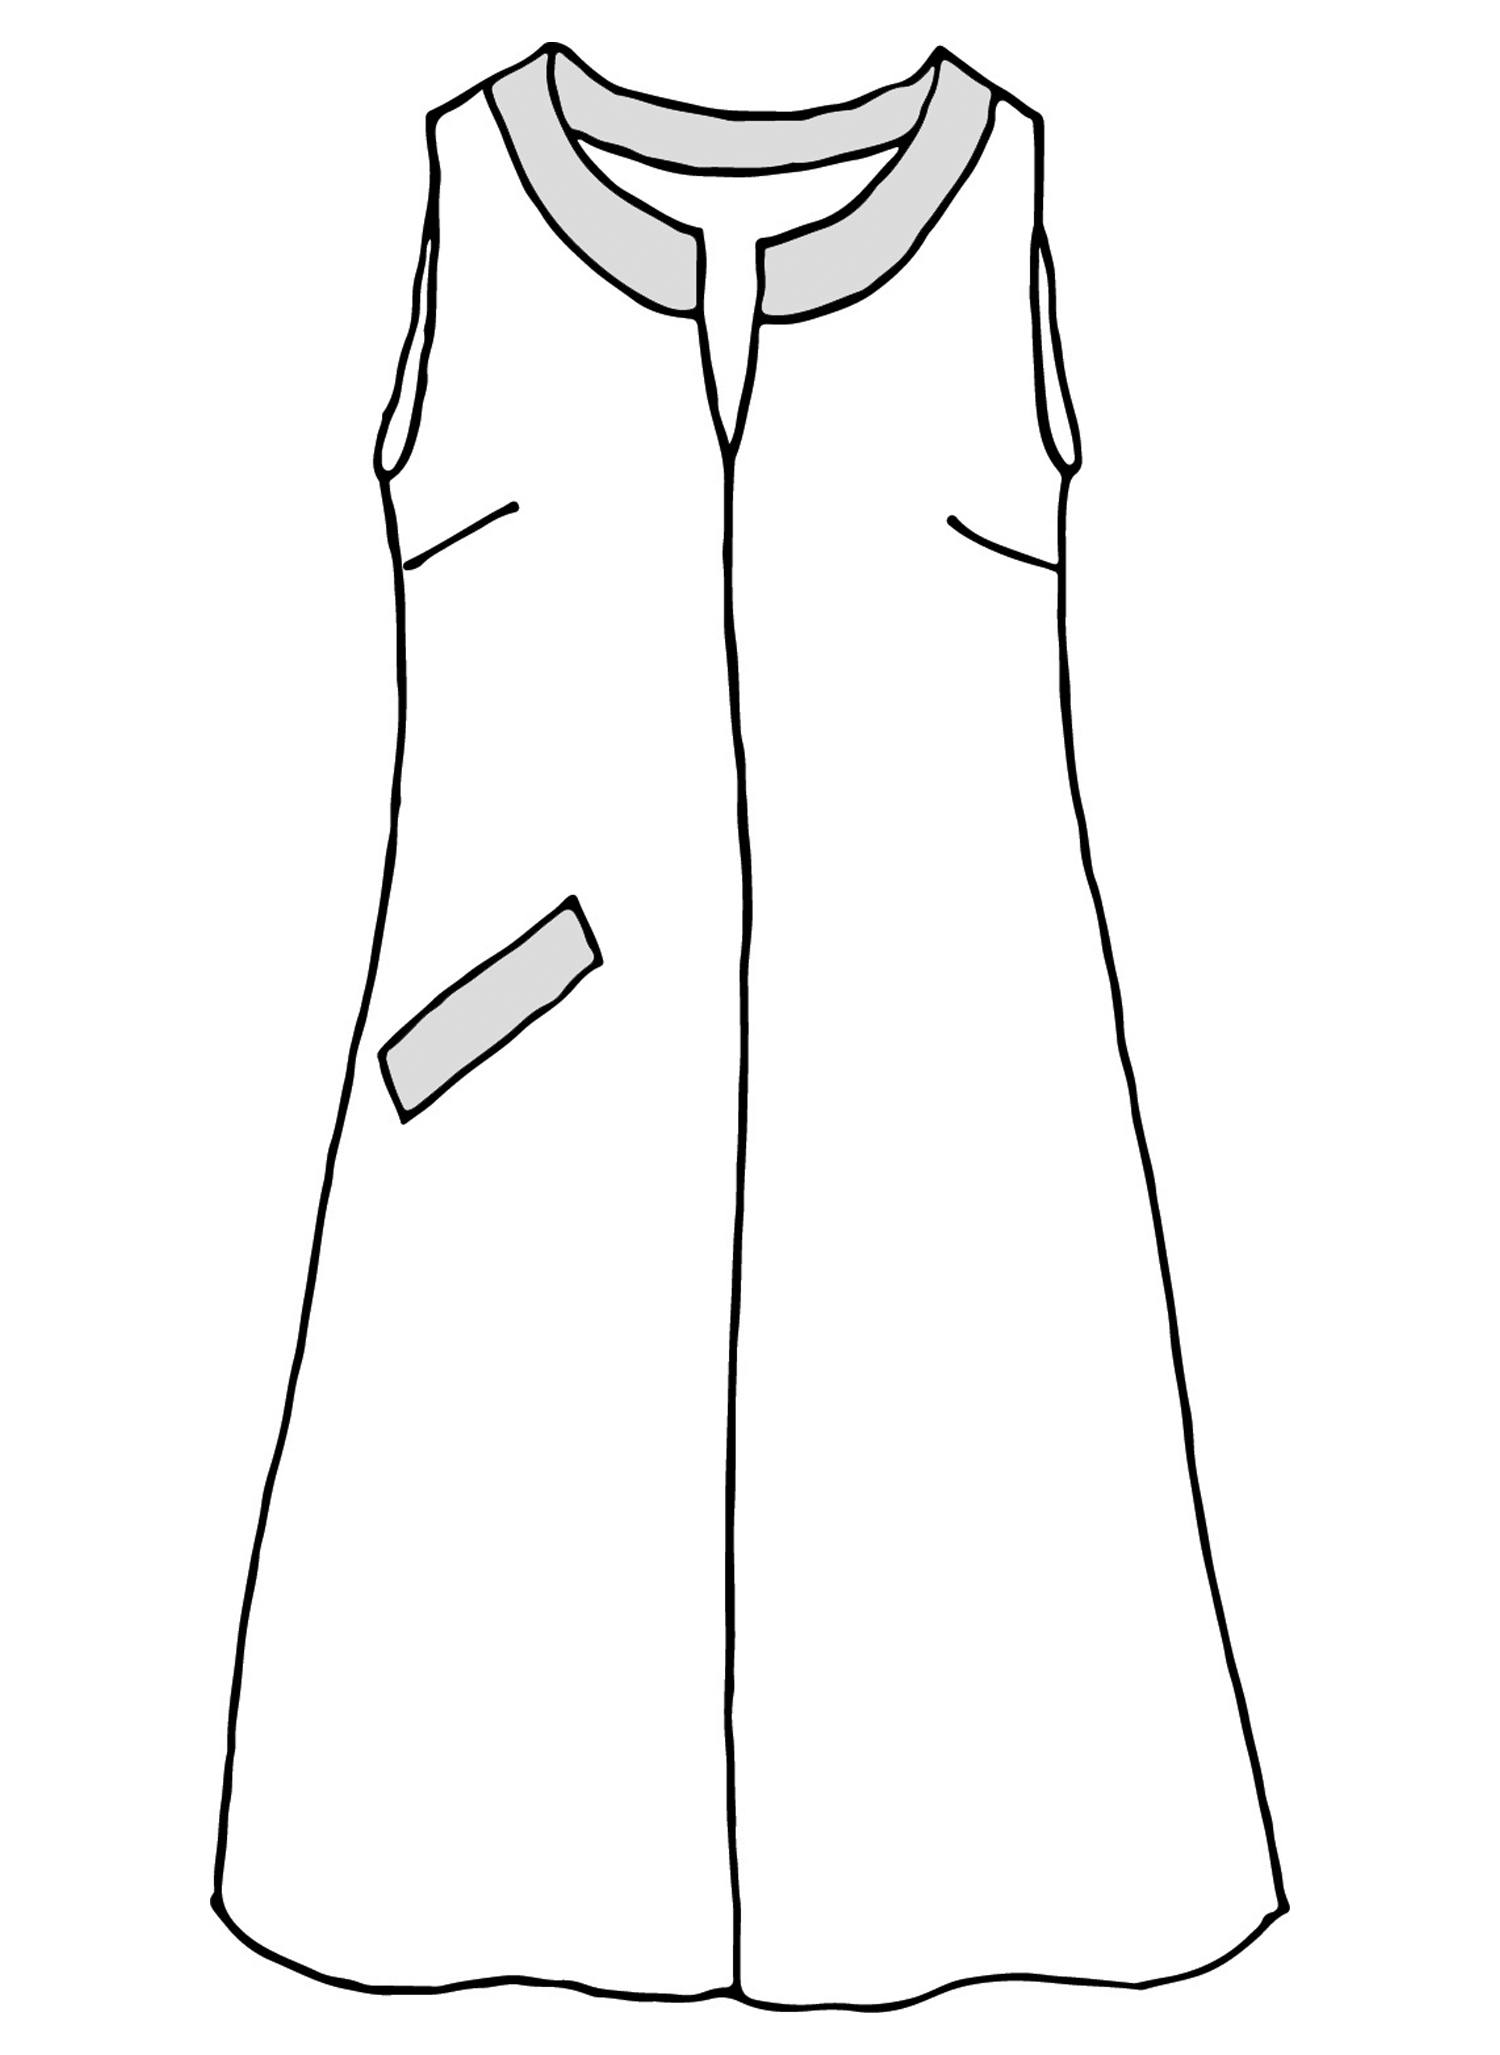 Charming Dress sketch image